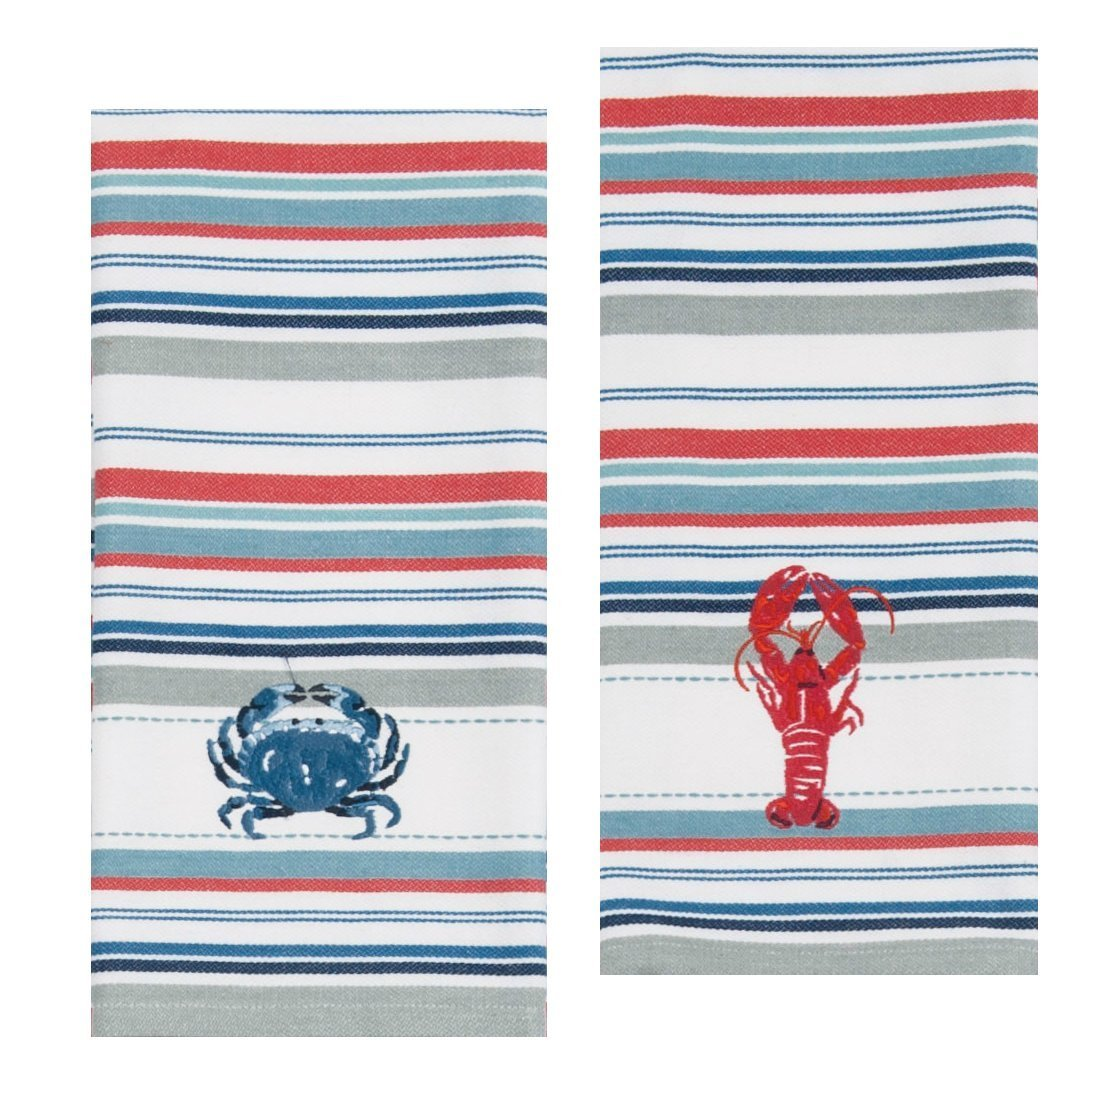 Kay Dee Designs Lobster & Crab Stripe Embroidered Towel Set